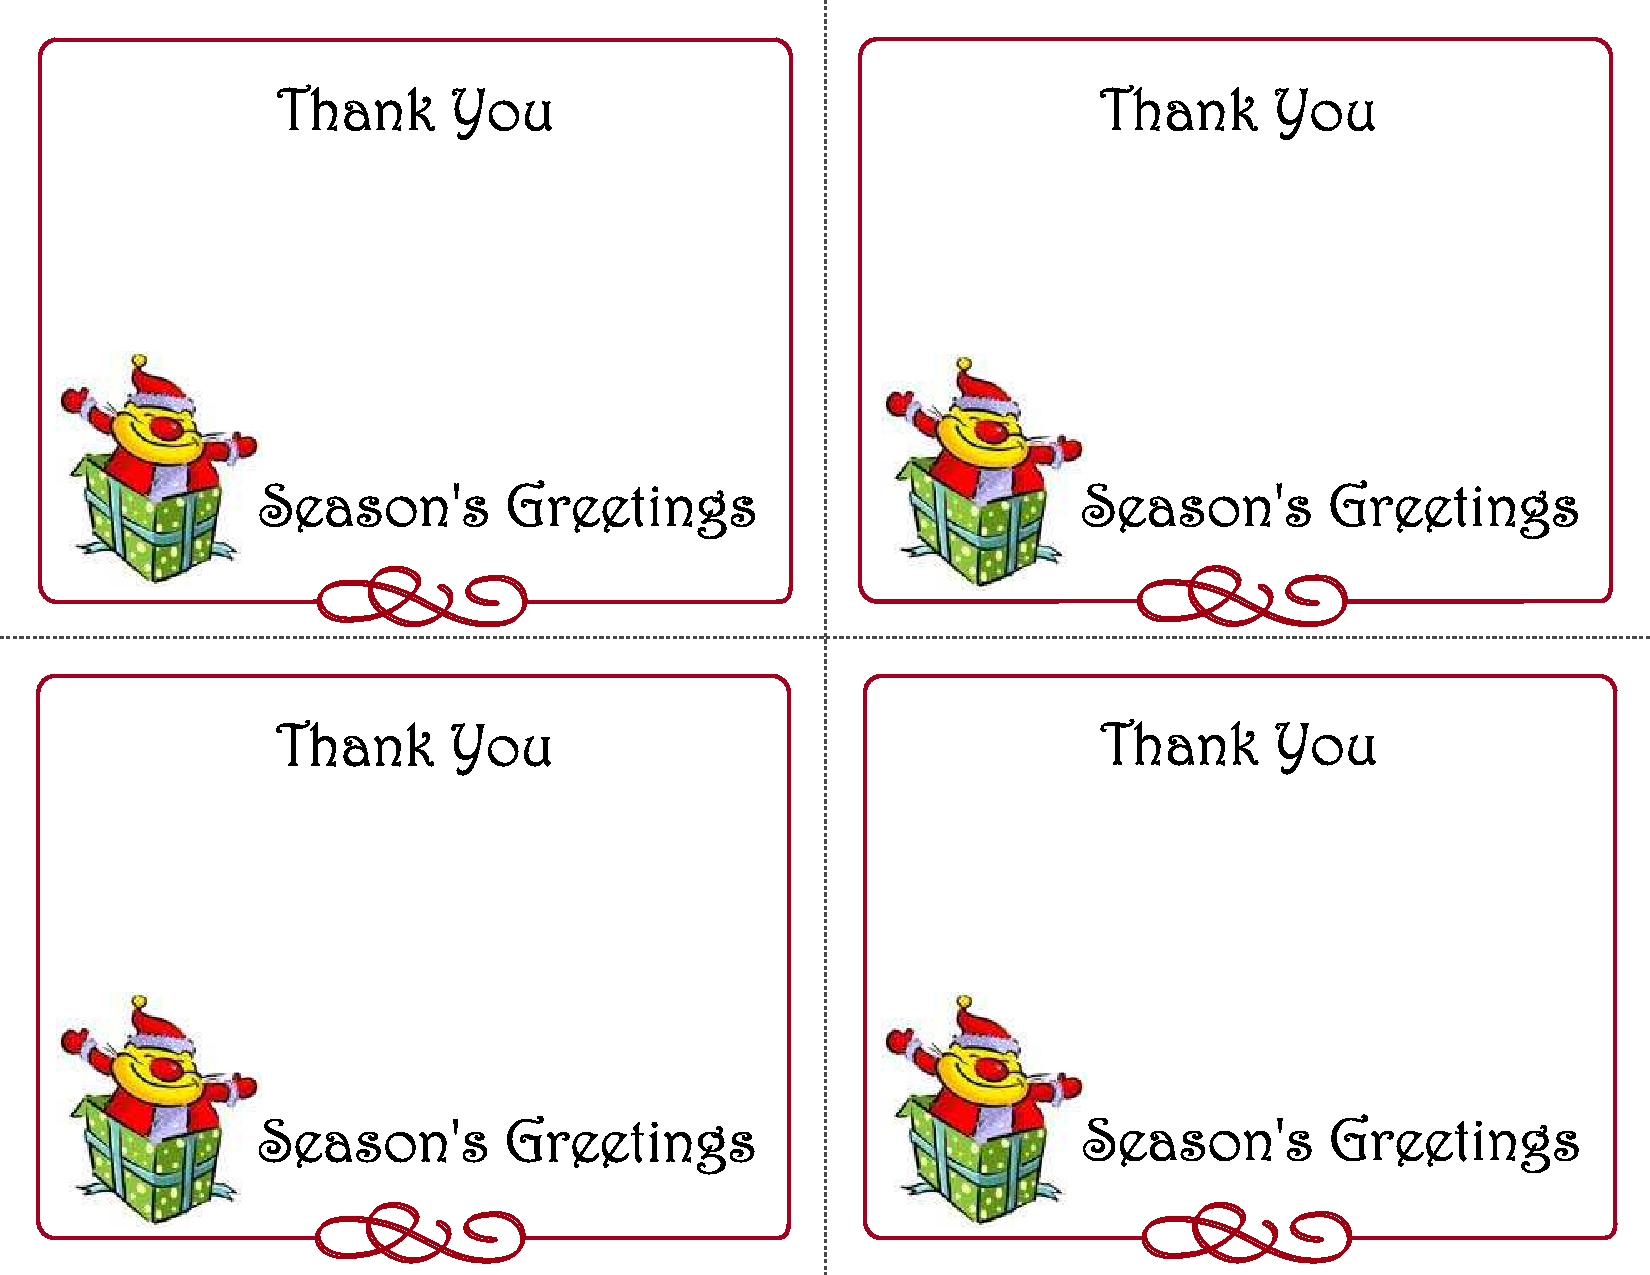 5 Images of Printable Holiday Cards